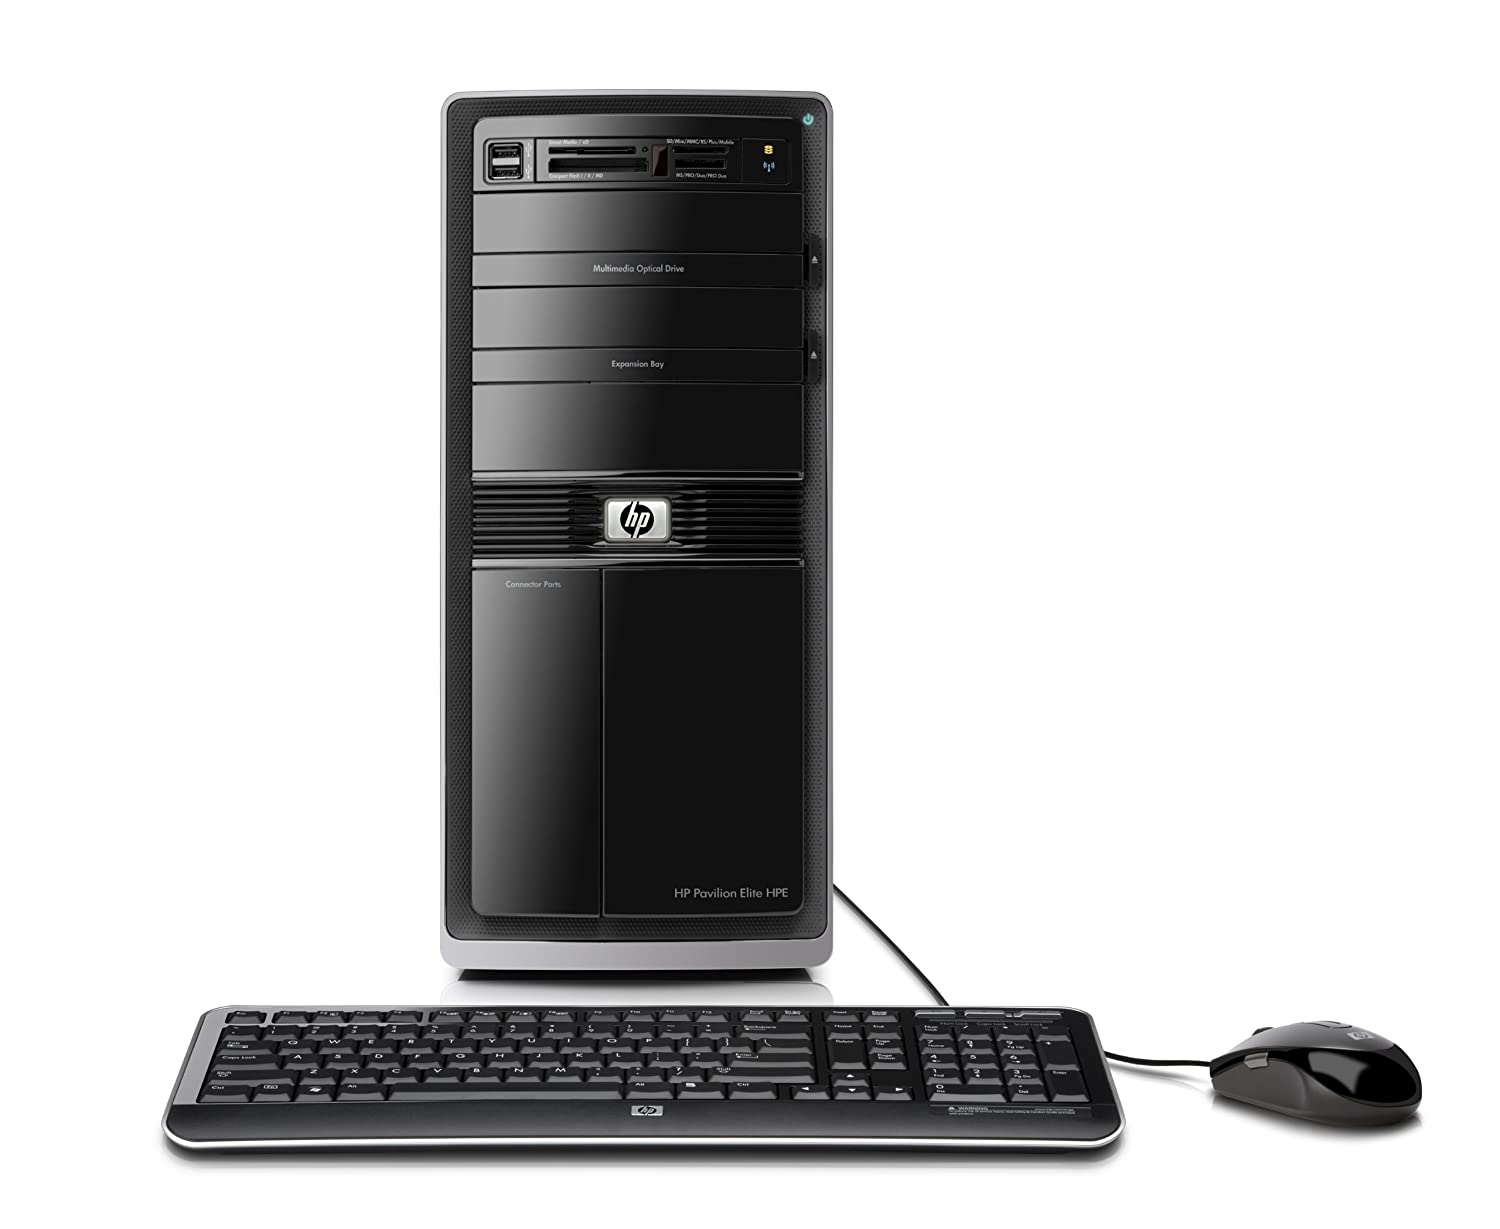 hp pavilion elite hpe 120f desktop pc used ebay. Black Bedroom Furniture Sets. Home Design Ideas